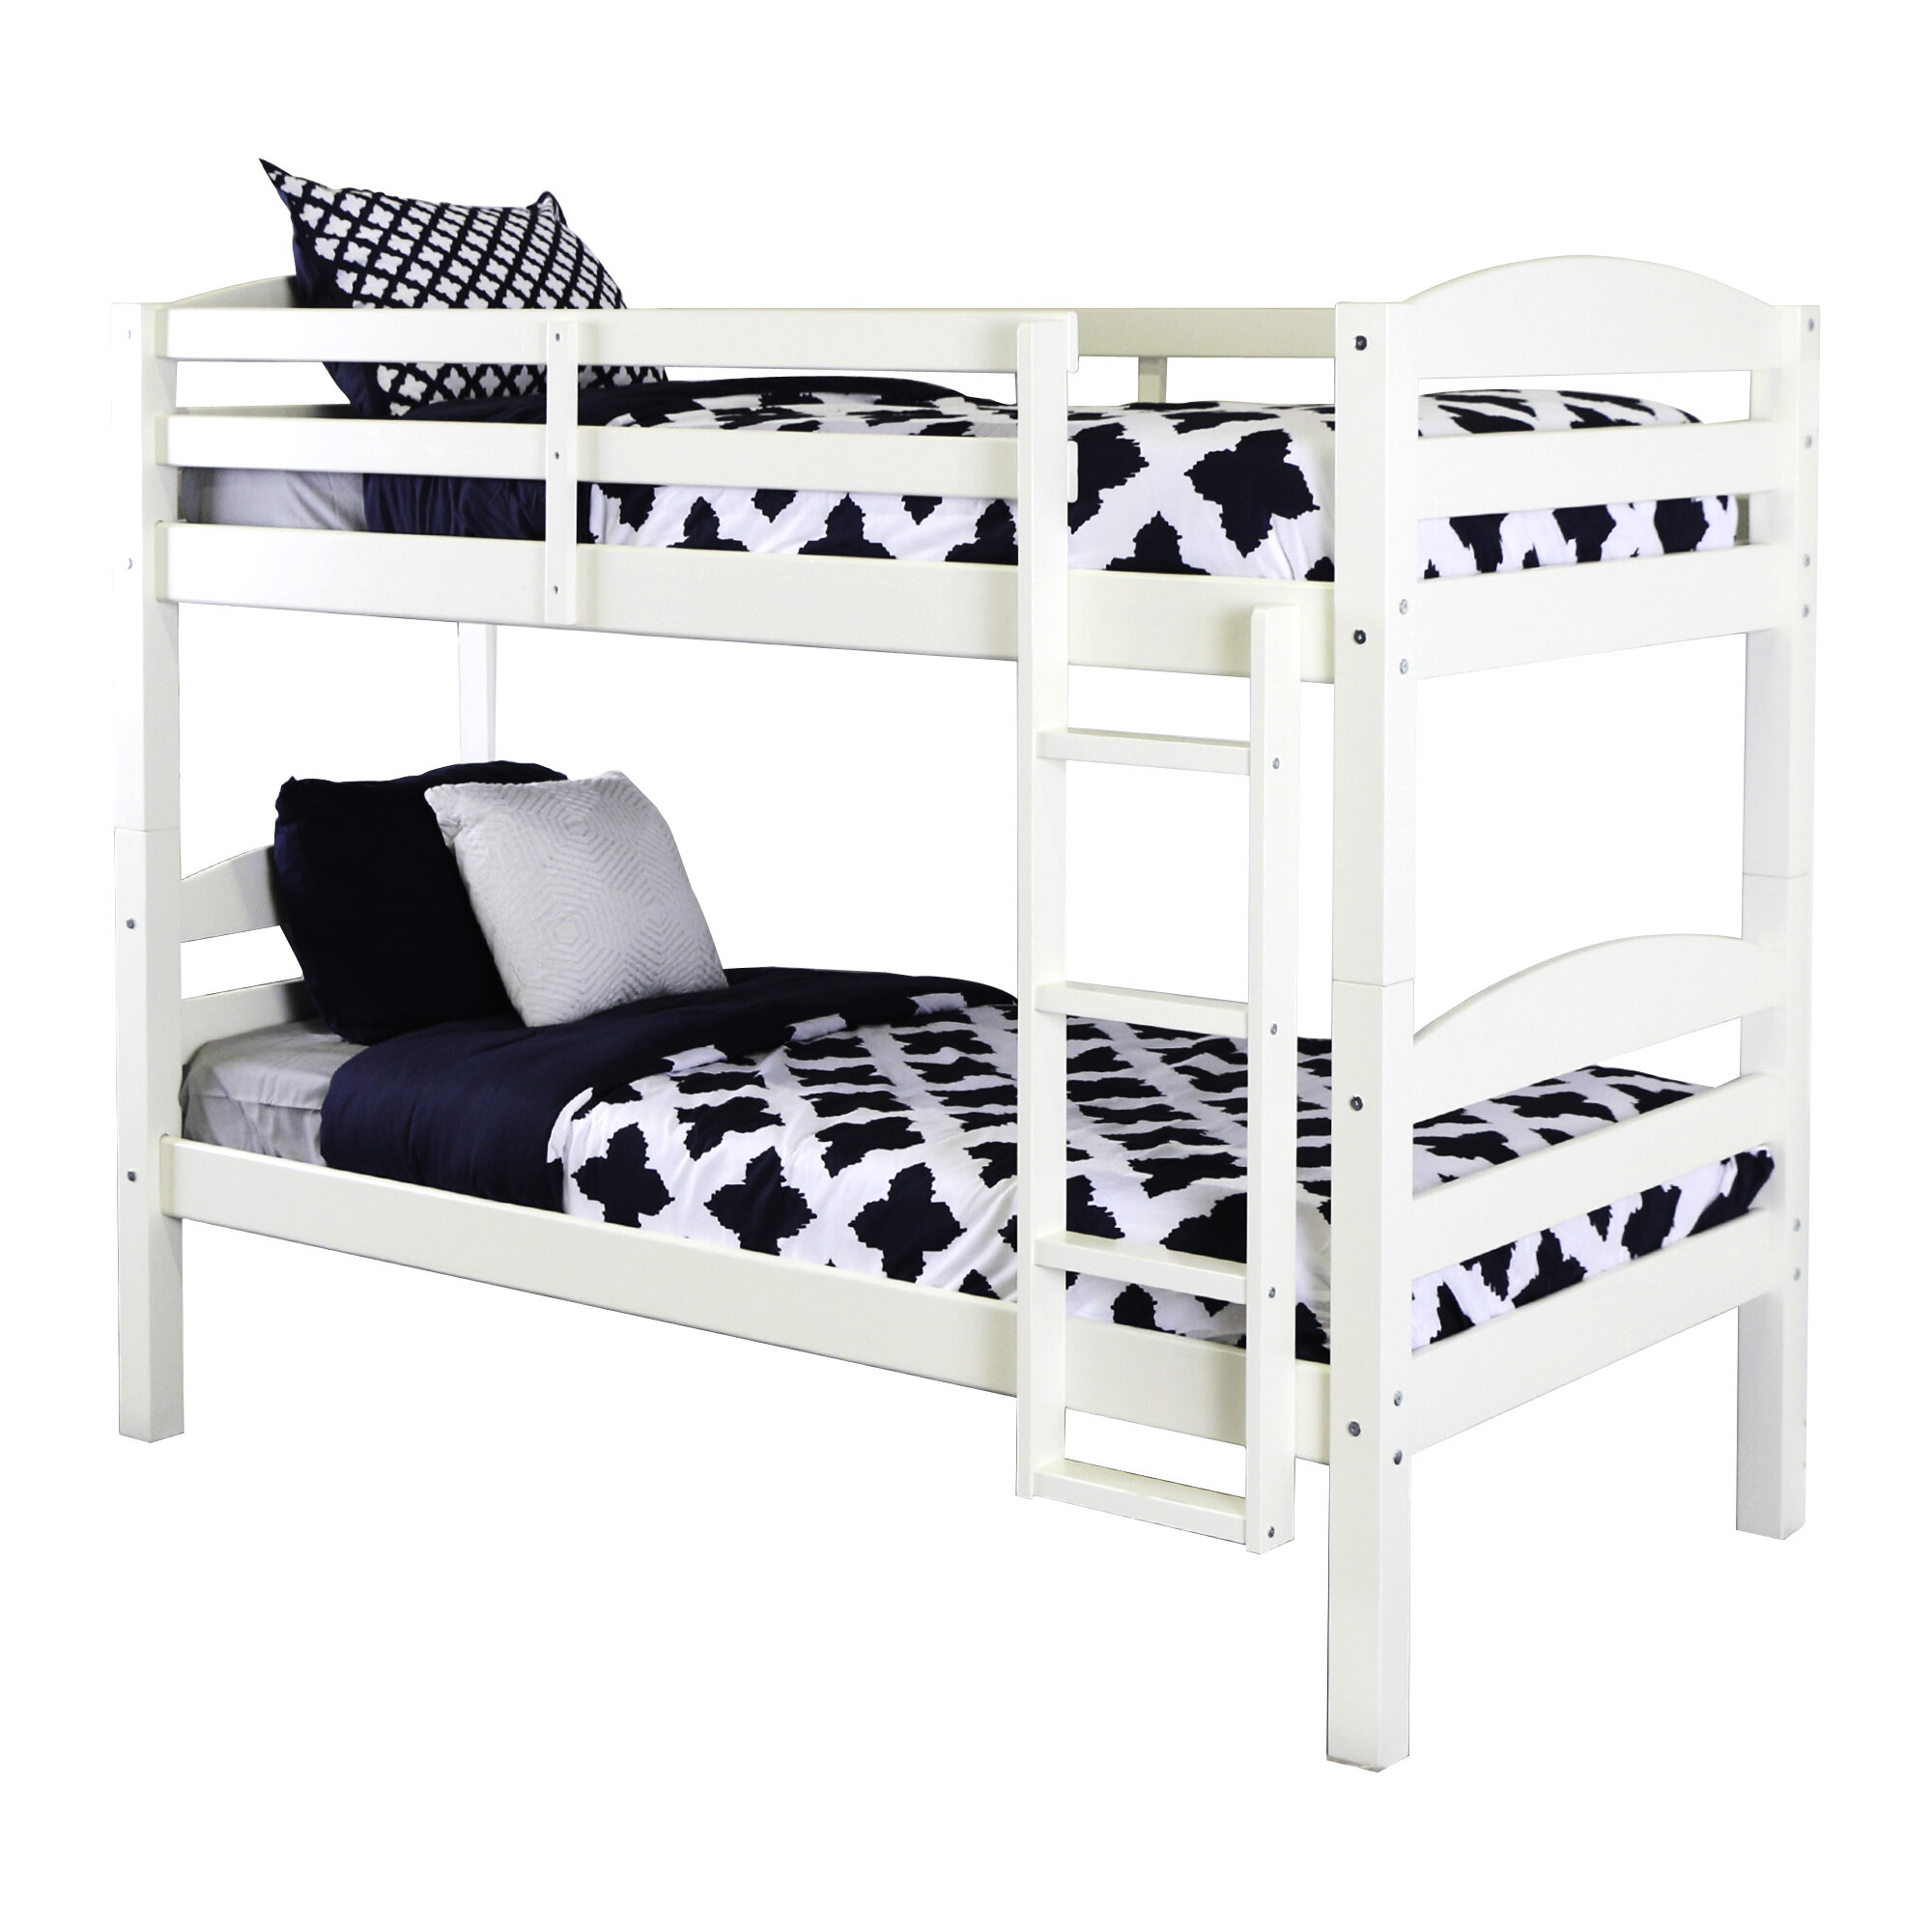 Viv + Rae Abby Twin over Twin Bunk Bed & Reviews | Wayfair.ca Bun Bed on teen beds, adjustable beds, full beds, divan beds, trundle beds, childrens beds, sofa beds, cabin beds, traditional beds, wooden beds, king beds, guest beds, bedroom furniture, metal beds, two beds, bed frames, leather beds, dog beds, single beds, cool beds, desk beds, storage beds, boys beds, convertible beds, twin beds, faux leather beds, girls beds, ottoman beds, types of beds, corner beds, wall beds,